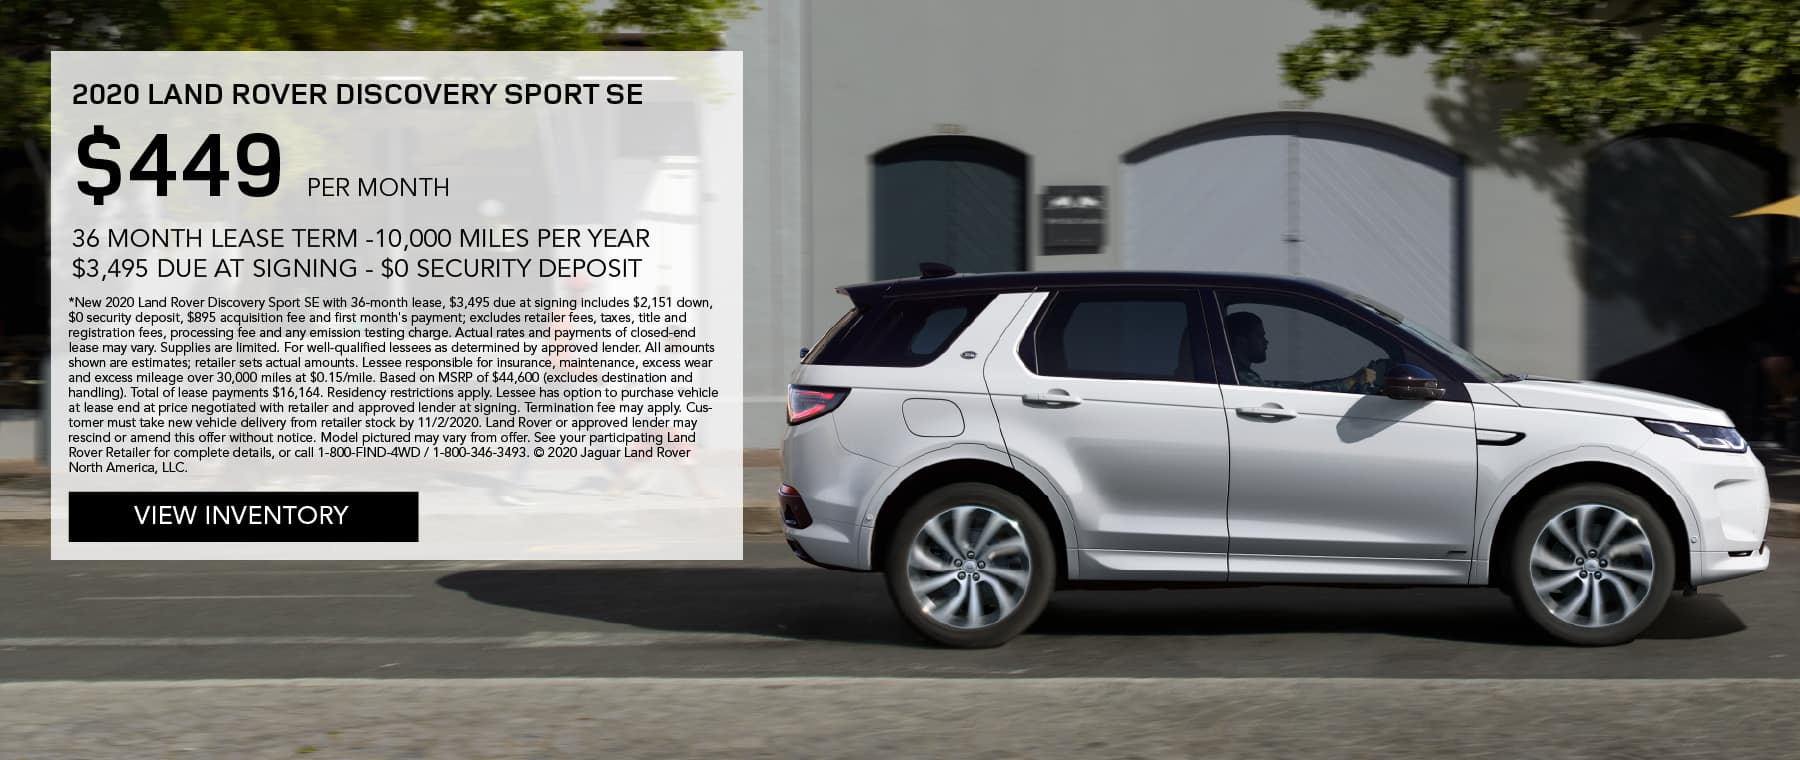 2020 LAND ROVER DISCOVERY SPORT SE. $449 PER MONTH. 36 MONTH LEASE TERM. $3,495 CASH DUE AT SIGNING. $0 SECURITY DEPOSIT. 10,000 MILES PER YEAR. EXCLUDES RETAILER FEES, TAXES, TITLE AND REGISTRATION FEES, PROCESSING FEE AND ANY EMISSION TESTING CHARGE. ENDS 11/2/2020. VIEW INVENTORY. WHITE DISCOVERY SPORT DRIVING DOWN ROAD IN CITY.